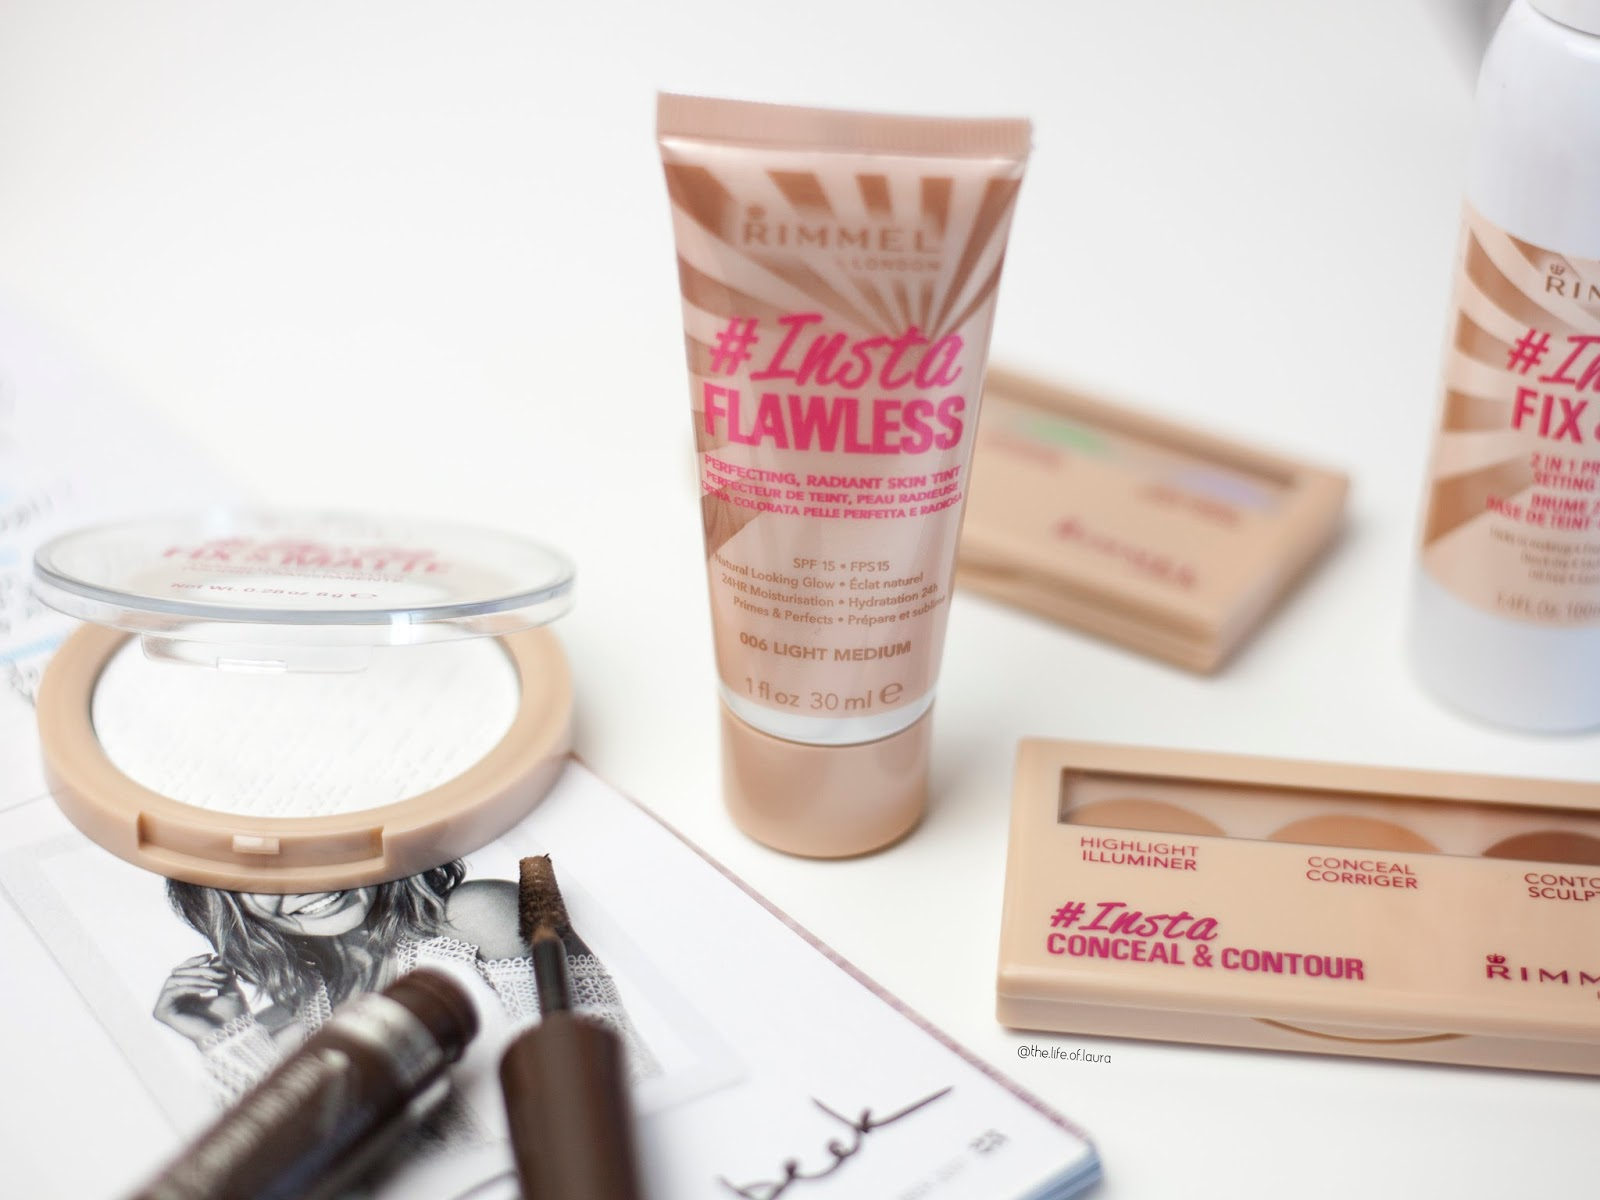 #Insta Flawless Rimmel London